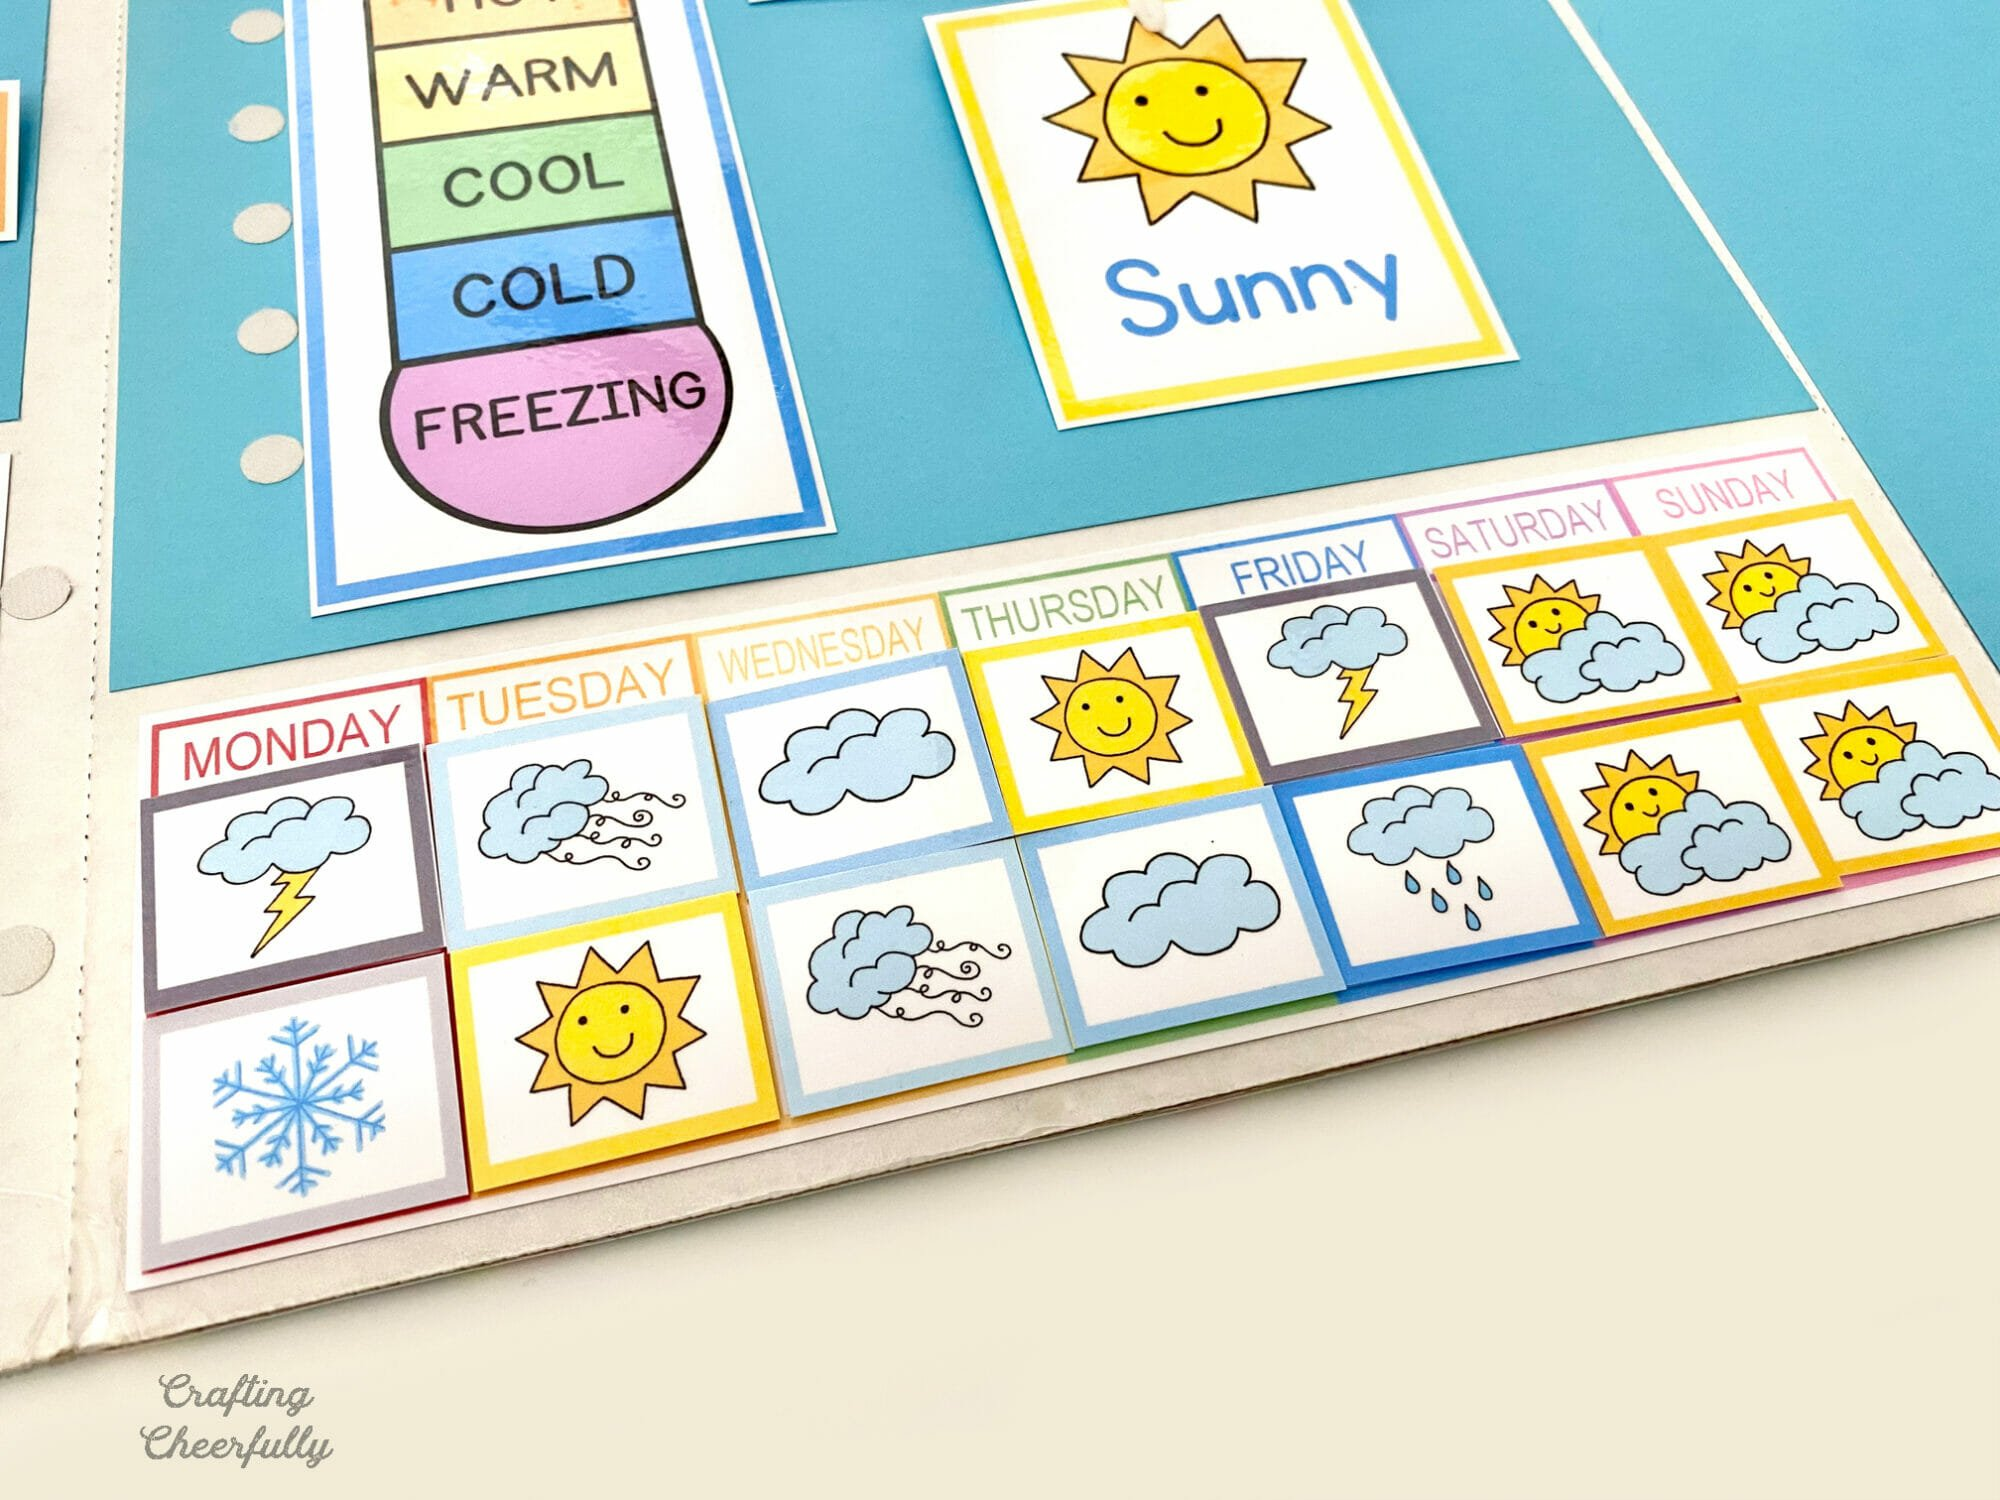 DIY Weather Calendar with lots of small weather cards for each day of the week.